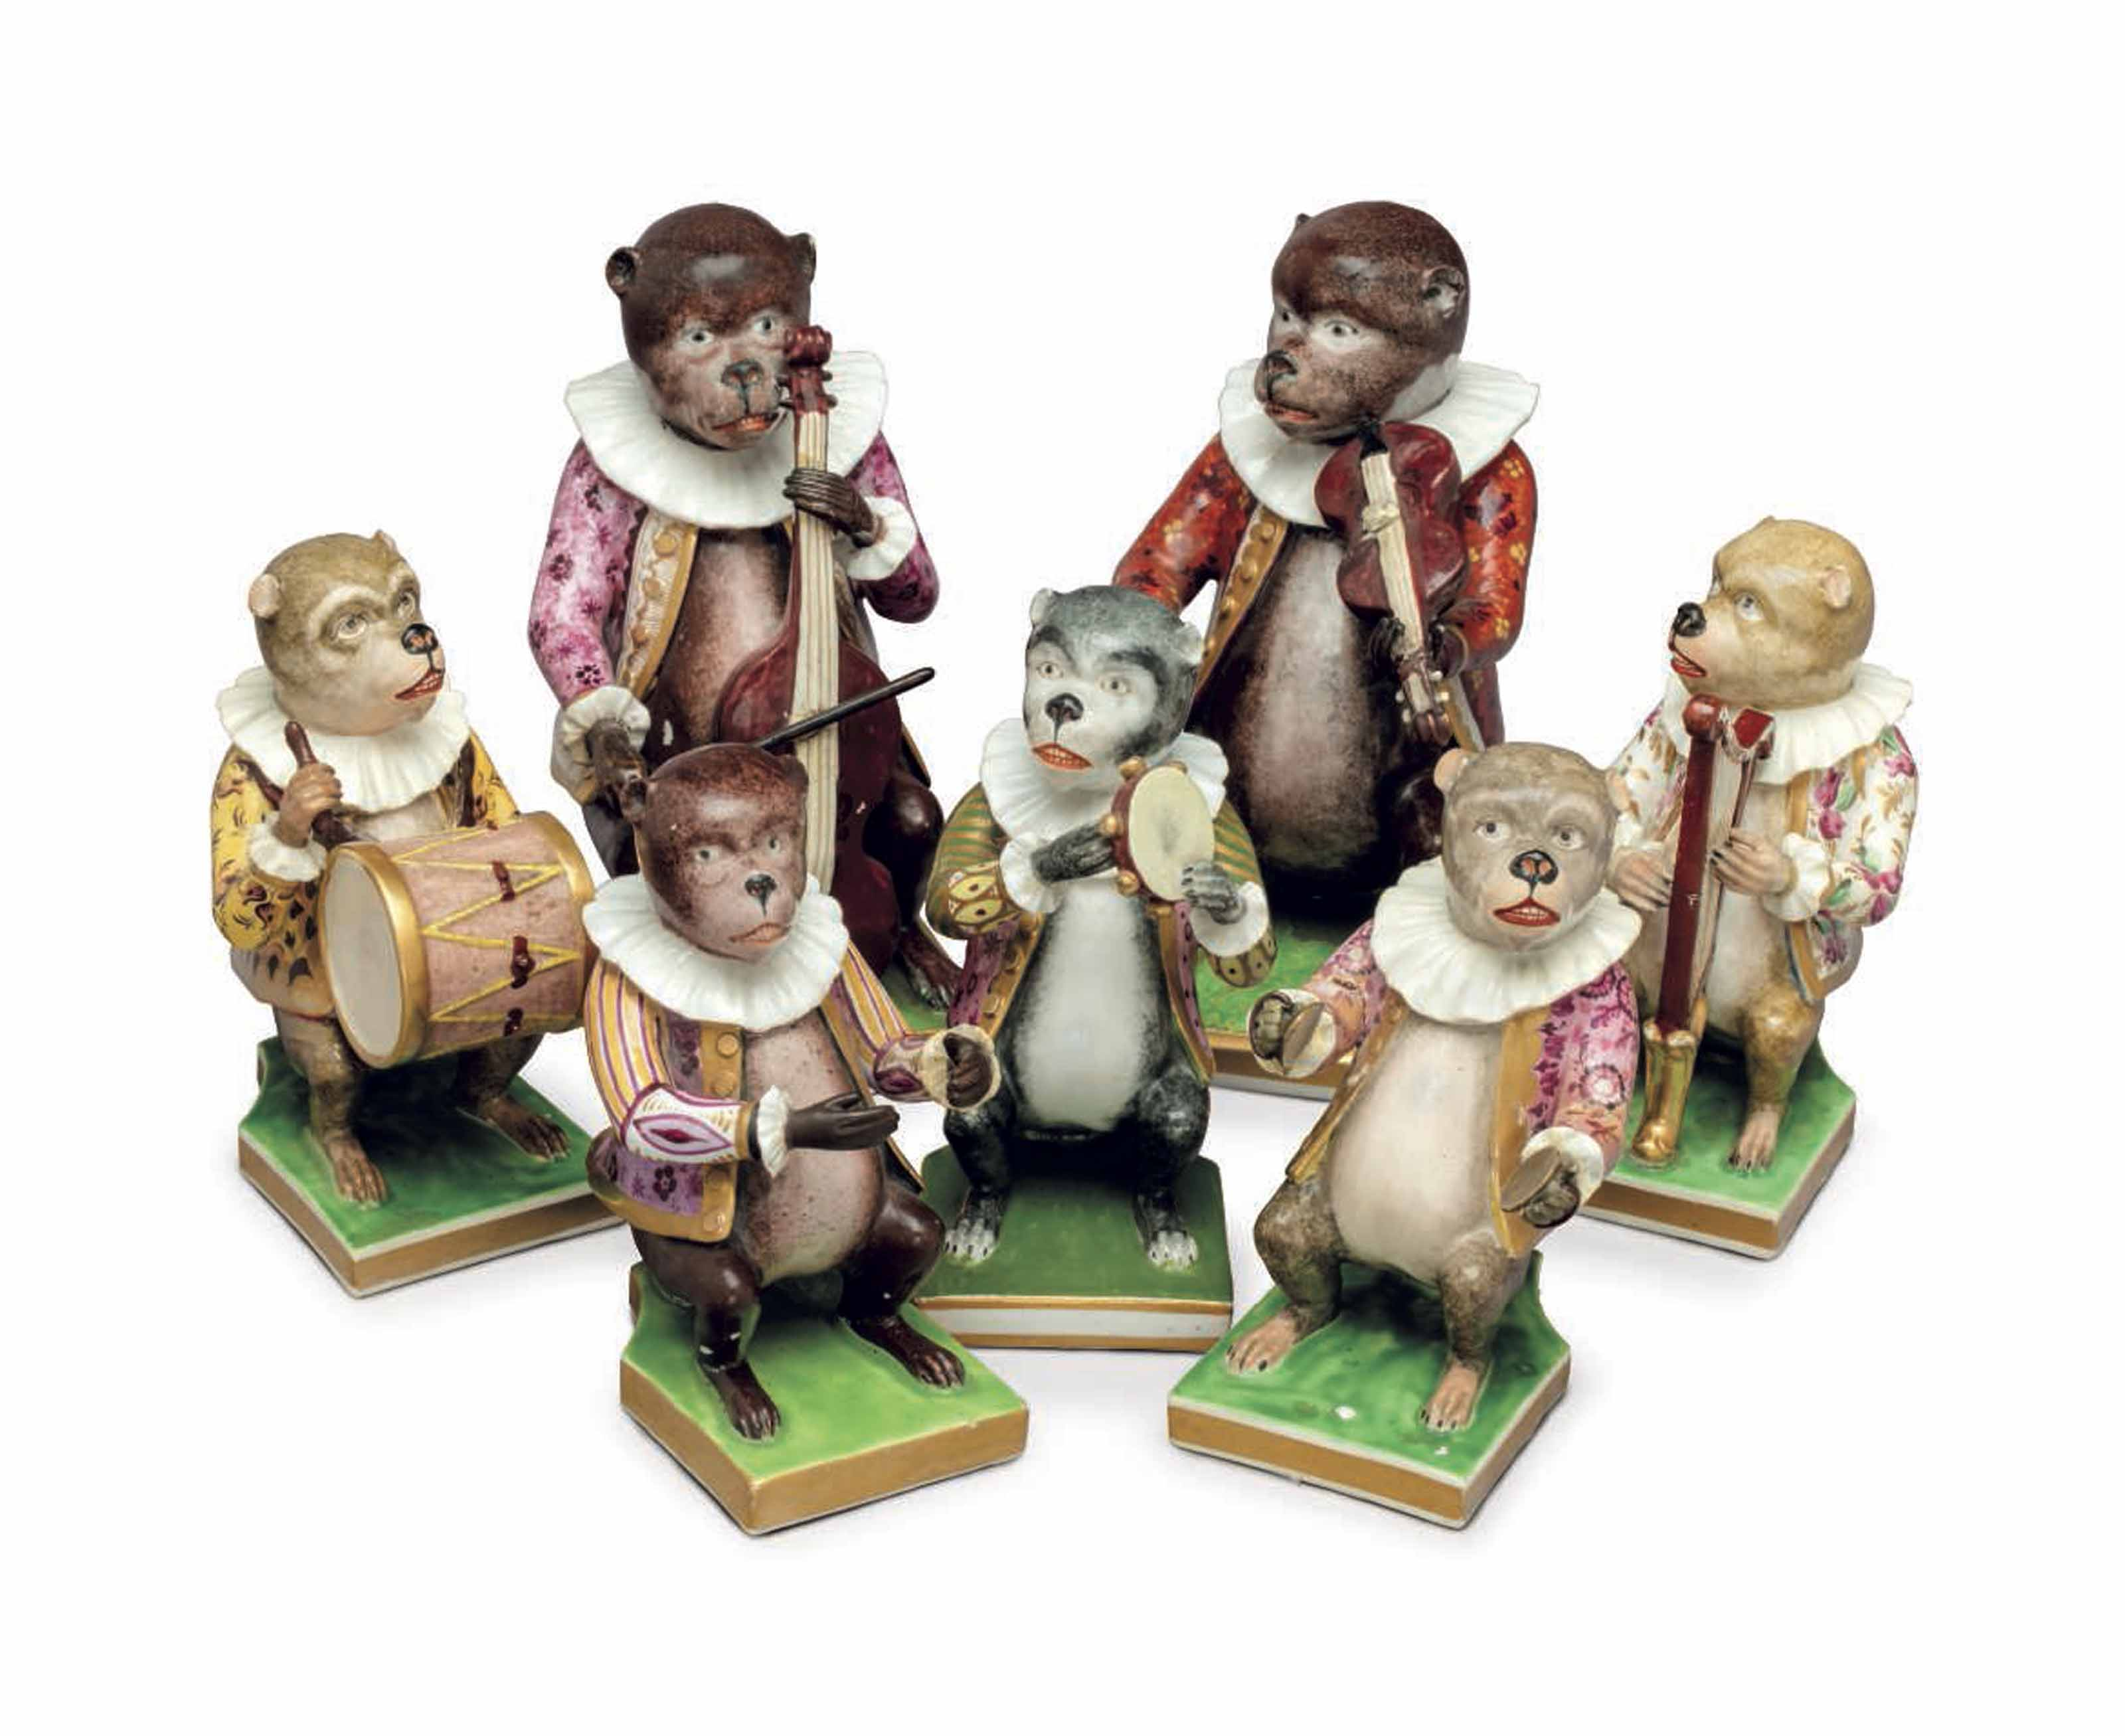 SEVEN DERBY PORCELAIN MODELS OF MUSICIANS FROM A MONKEY BAND